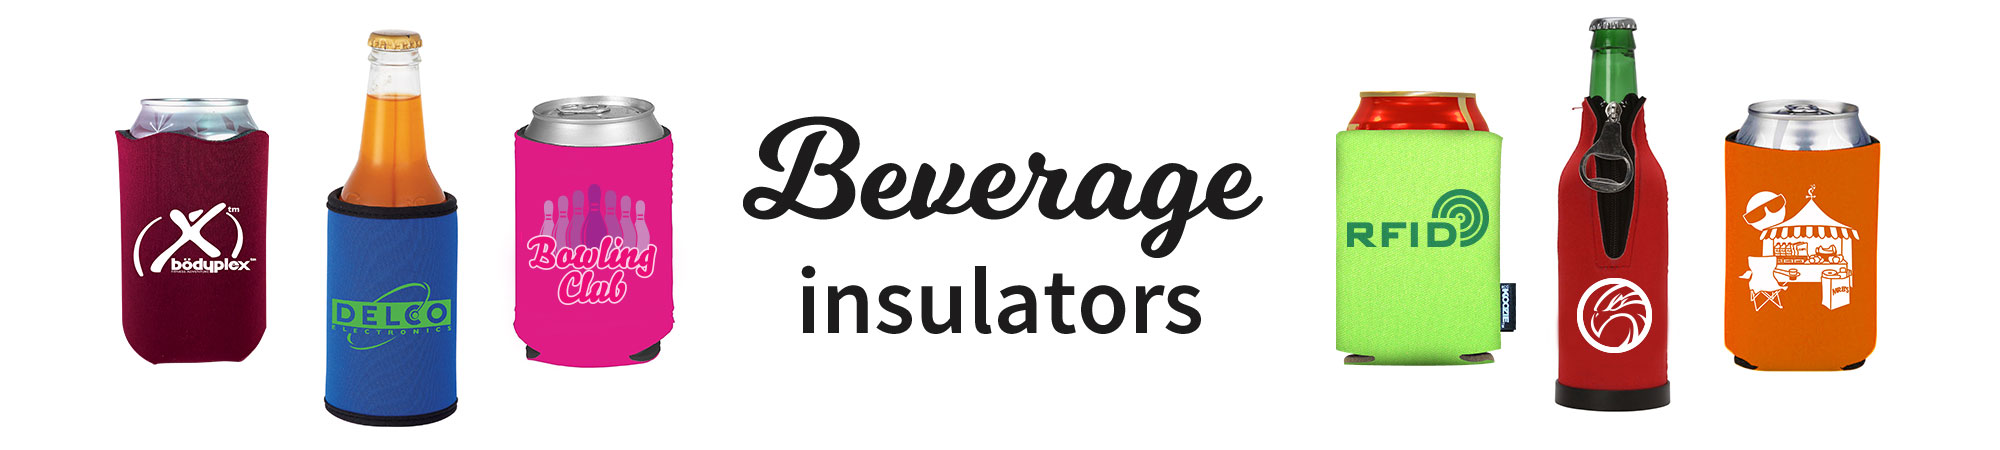 Beverage Insulators